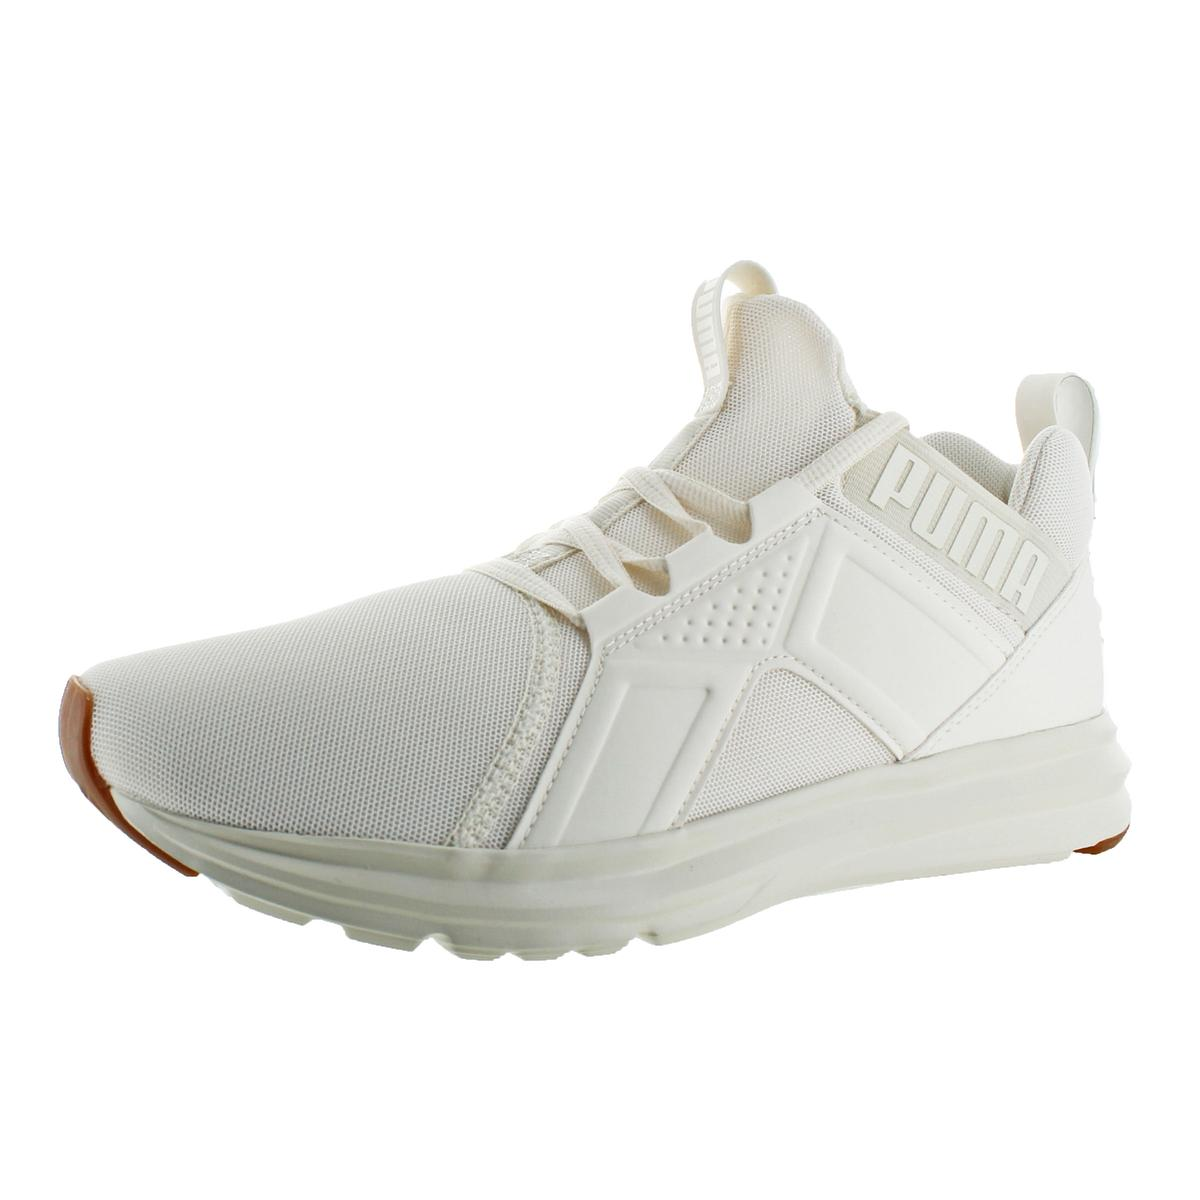 713421a93e875b Puma Enzo Mesh Men  s Softfoam Sockliner Mid-Top Trainer Fashion Sneaker  Shoes